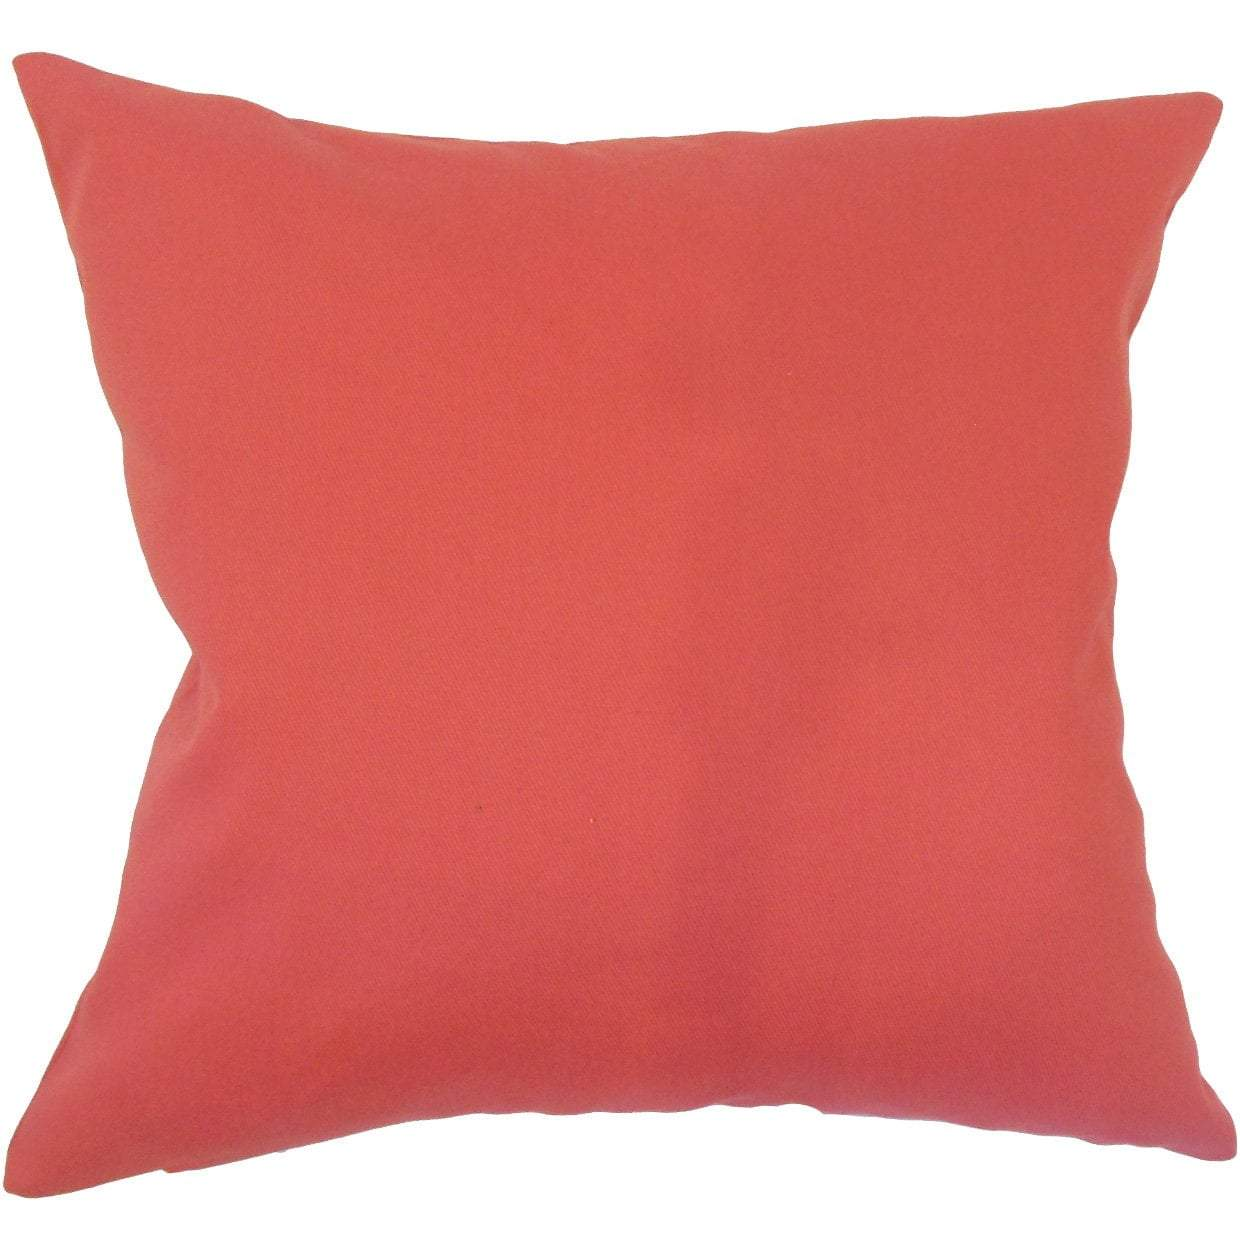 Young Throw Pillow Cover